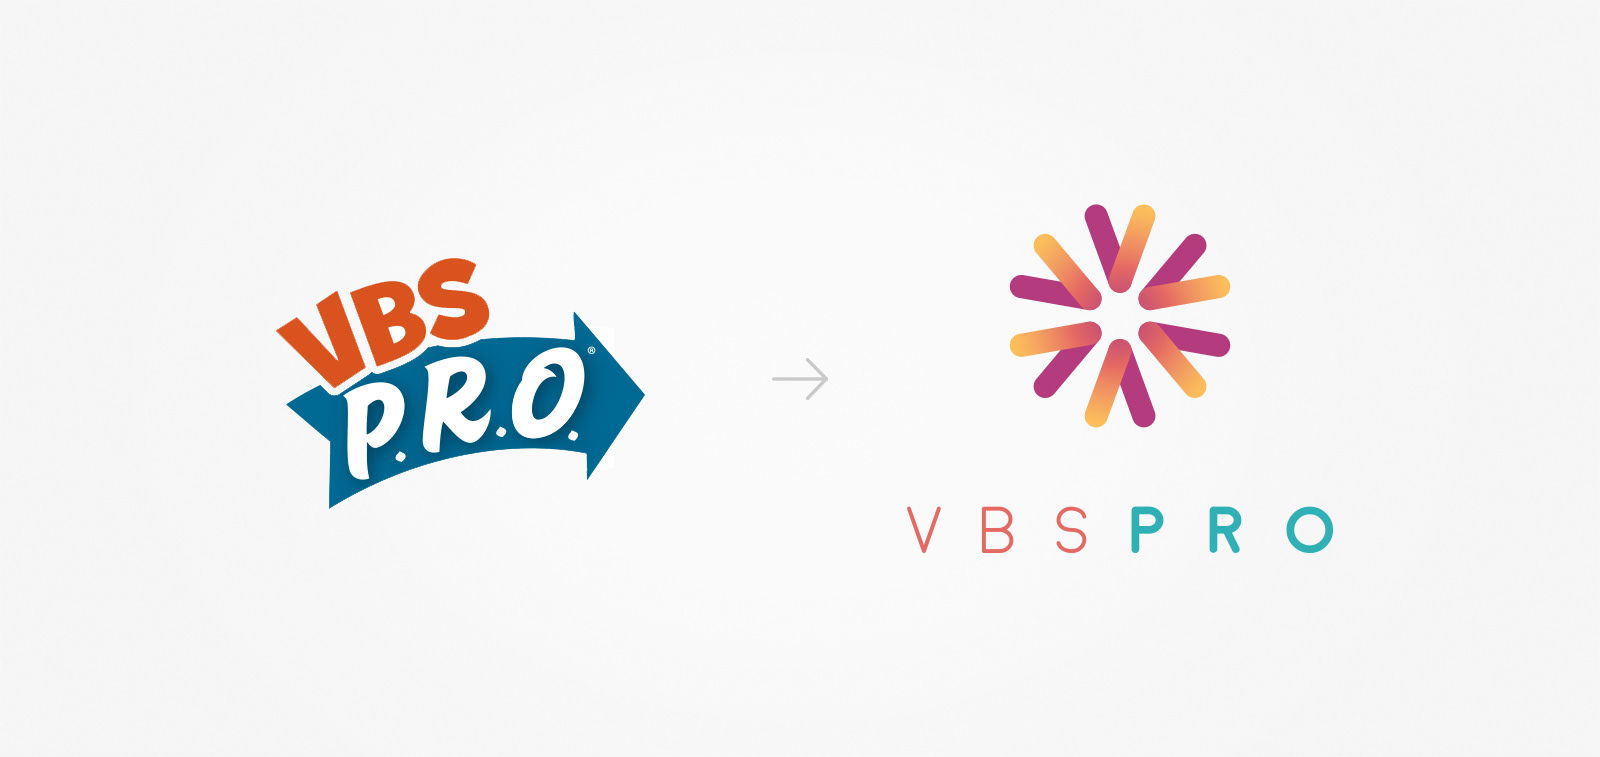 groups vbs pro jv·creative - VBS PRO Rebrand